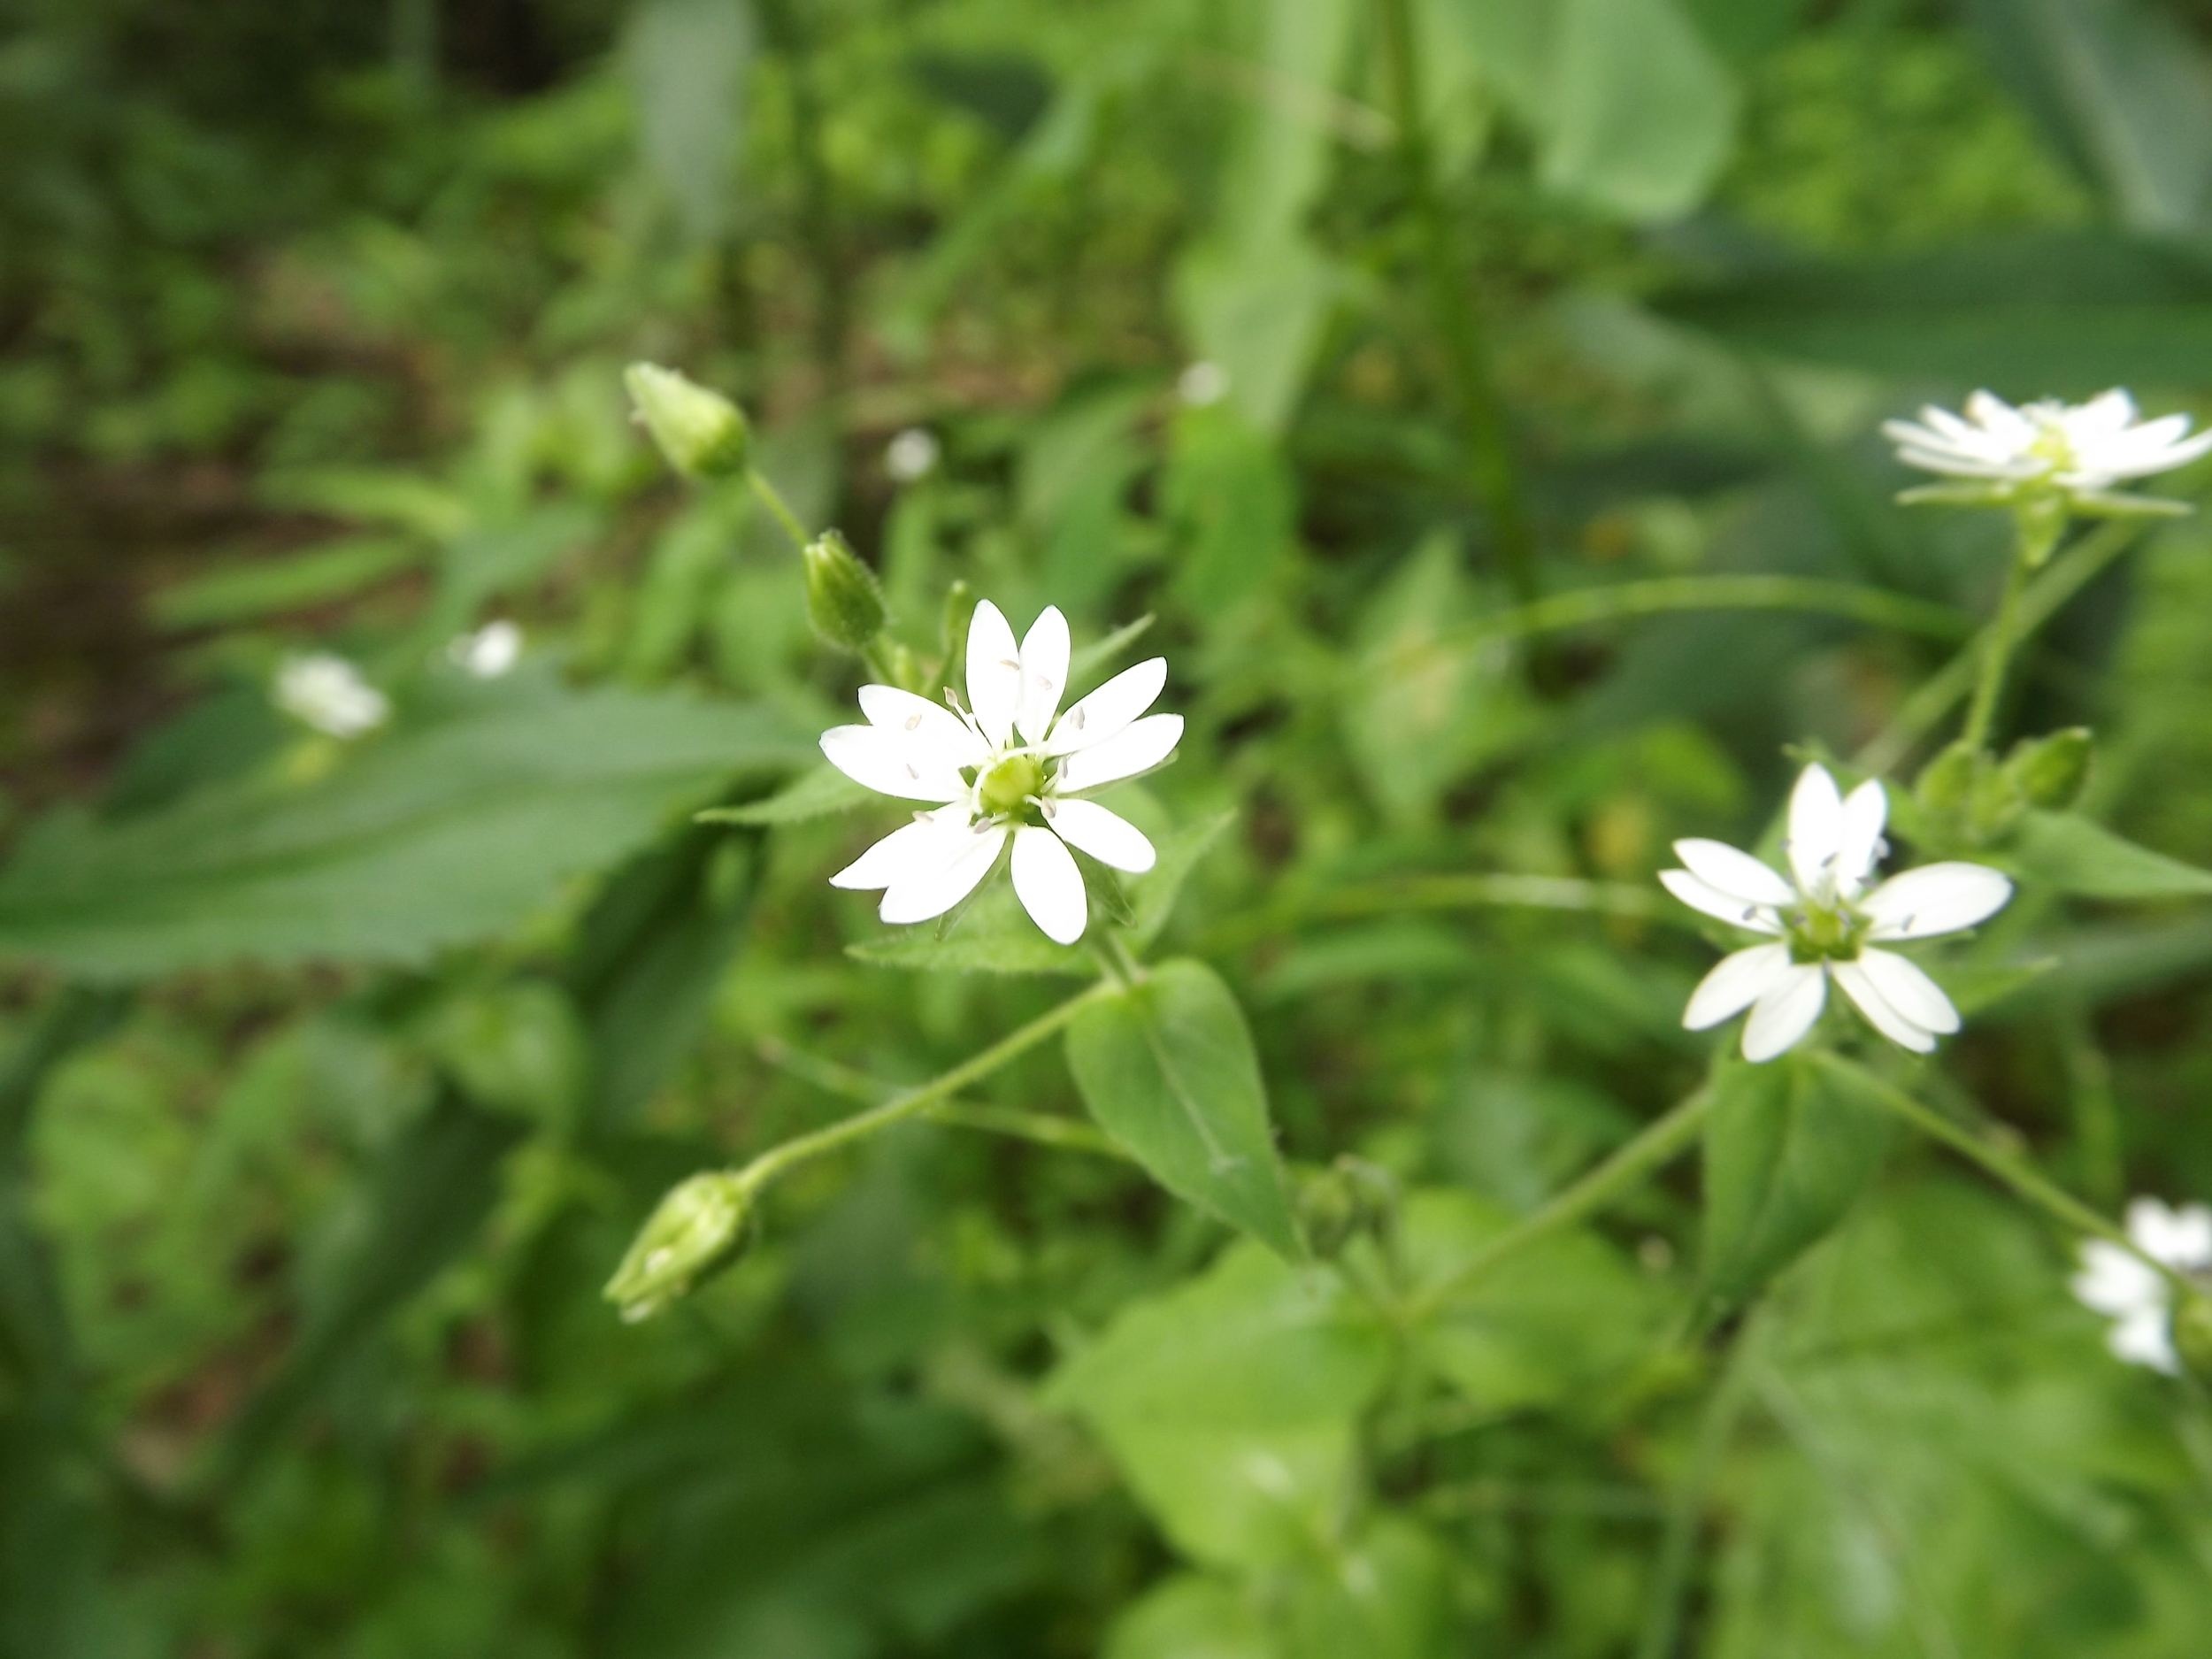 Star Chickweed ( Stellaria pubera ) - I found this specimen of Star Chickweed among a large concentration of Small Flower Forget-Me-Nots. Star Chickweed must prefer similar, watery habitats to Forget-Me-Nots since both were within a foot or so of the stream.